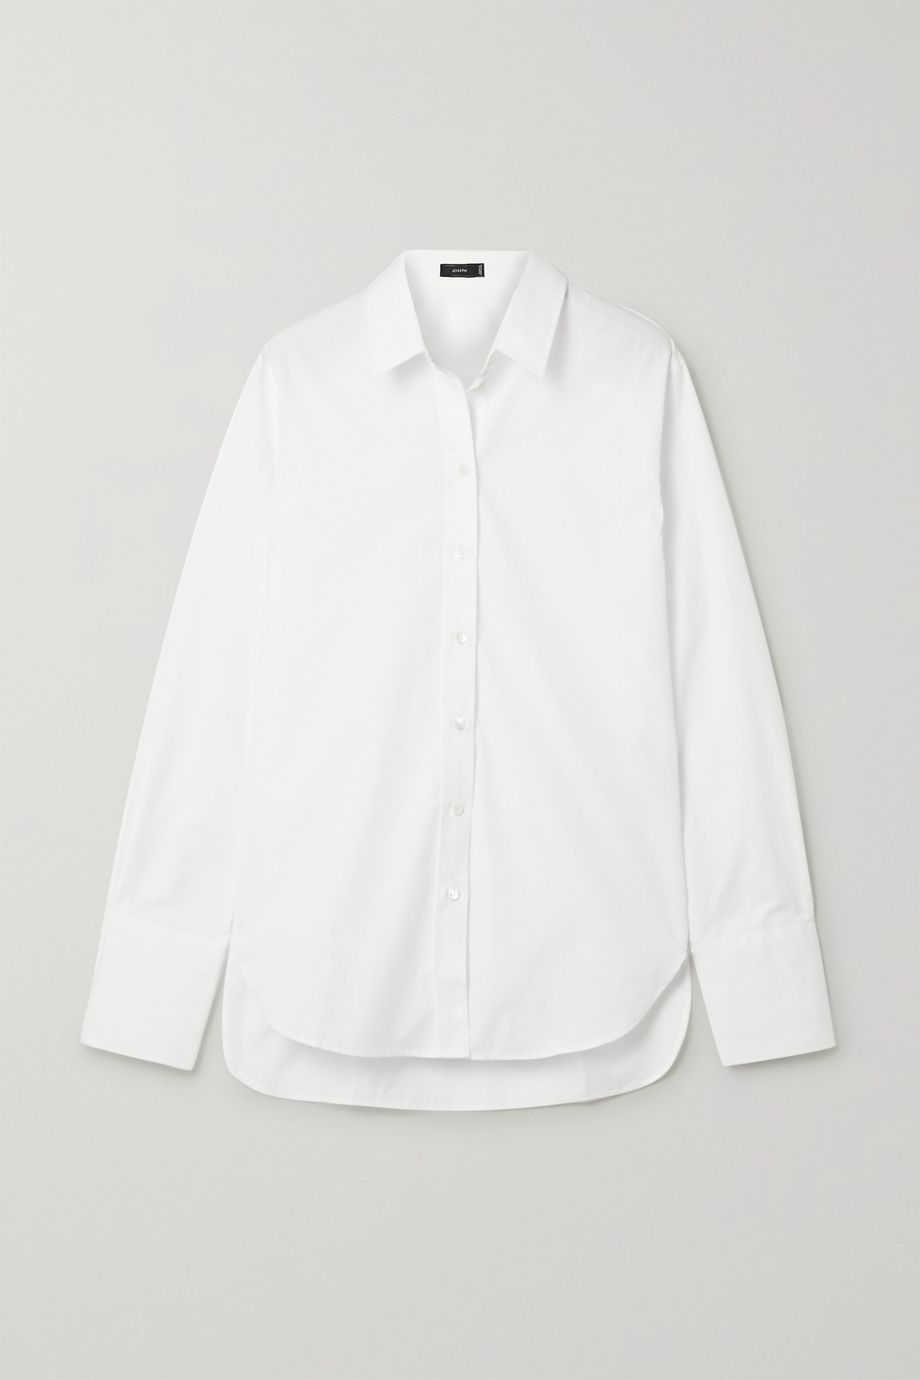 Joseph Joe cotton-poplin shirt